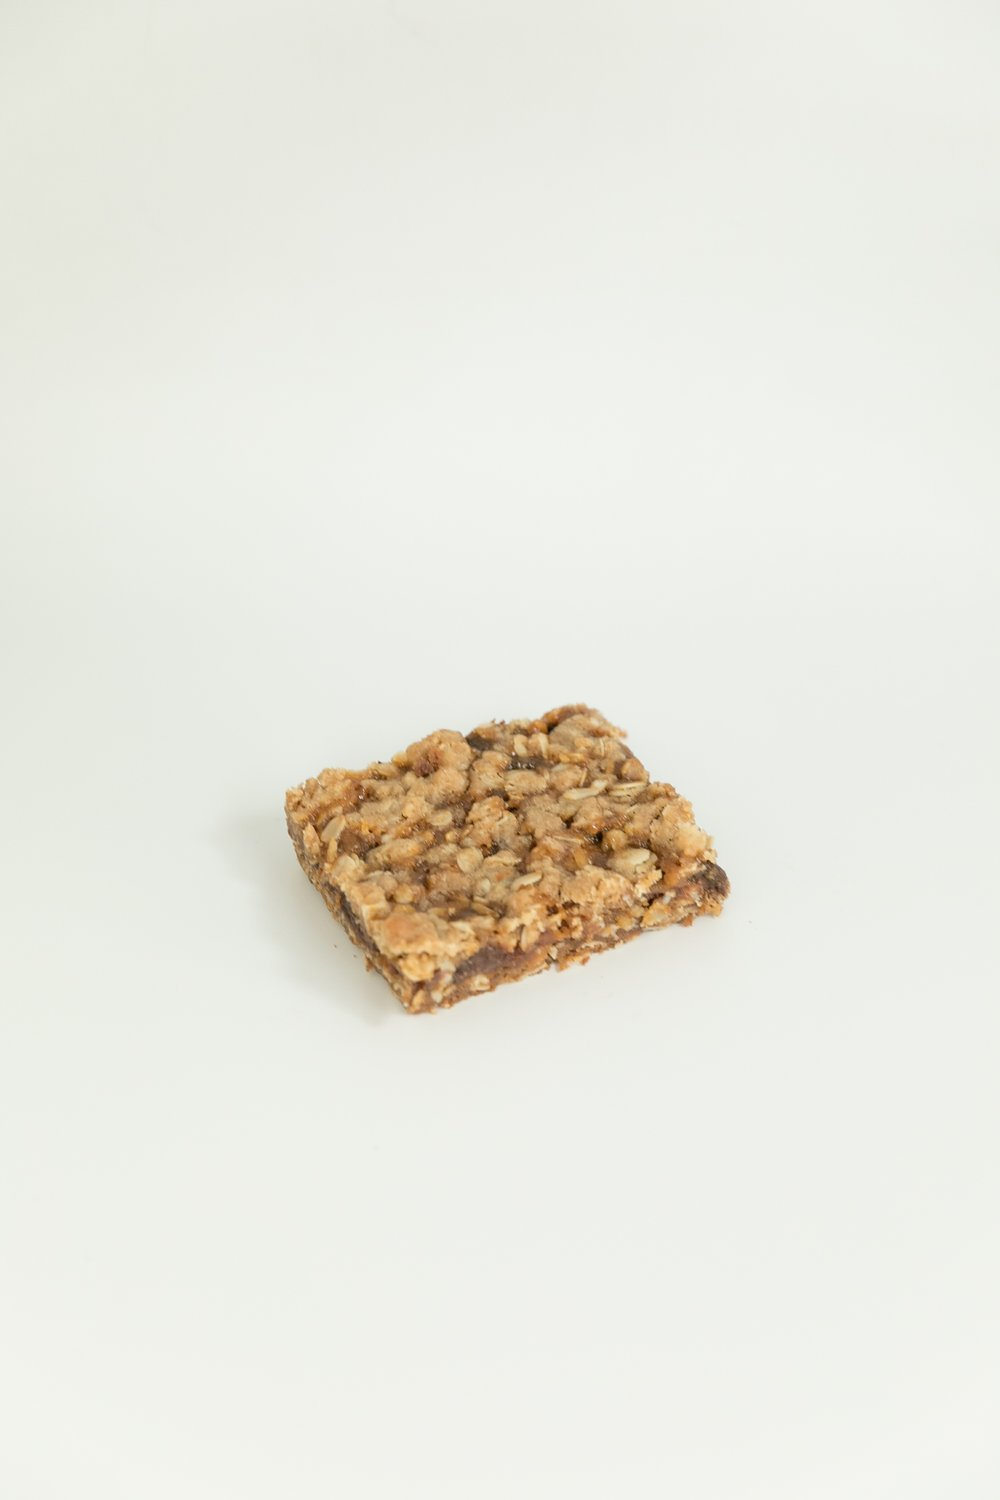 oatmeal caramelita is a delicious bar filled with caramel, oatmeal and so much chocolate!